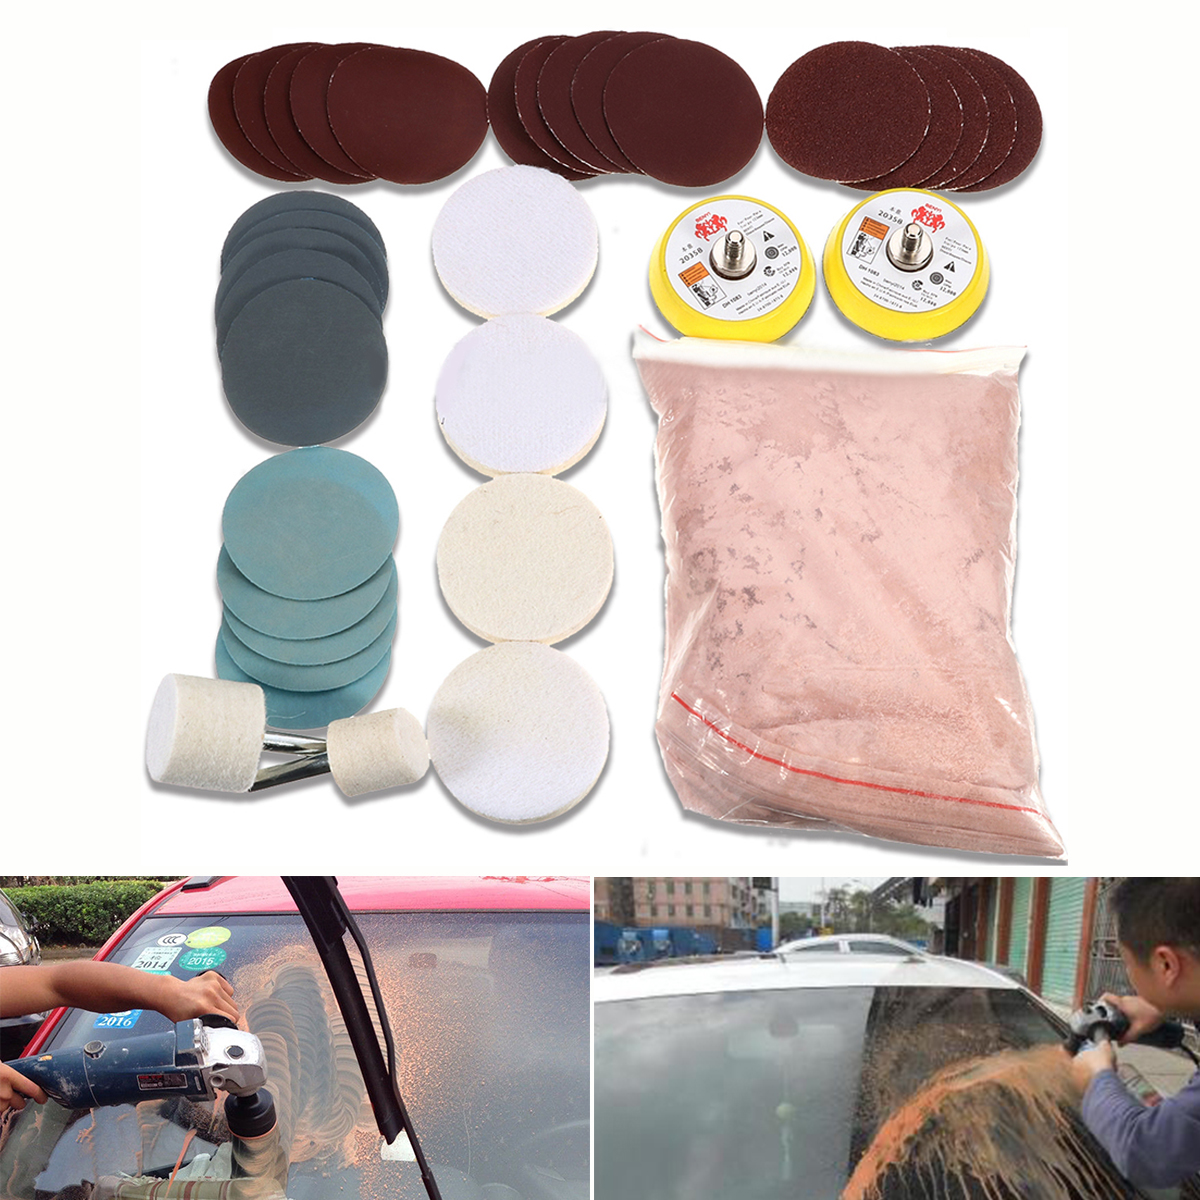 34pcs Deep Scratch Remove Glass Polishing Kit 8 OZ Cerium Oxide + Sanding Disc + Wool Polishing Pads+Felt Polishing Wheel Mayitr 1pc white or green polishing paste wax polishing compounds for high lustre finishing on steels hard metals durale quality